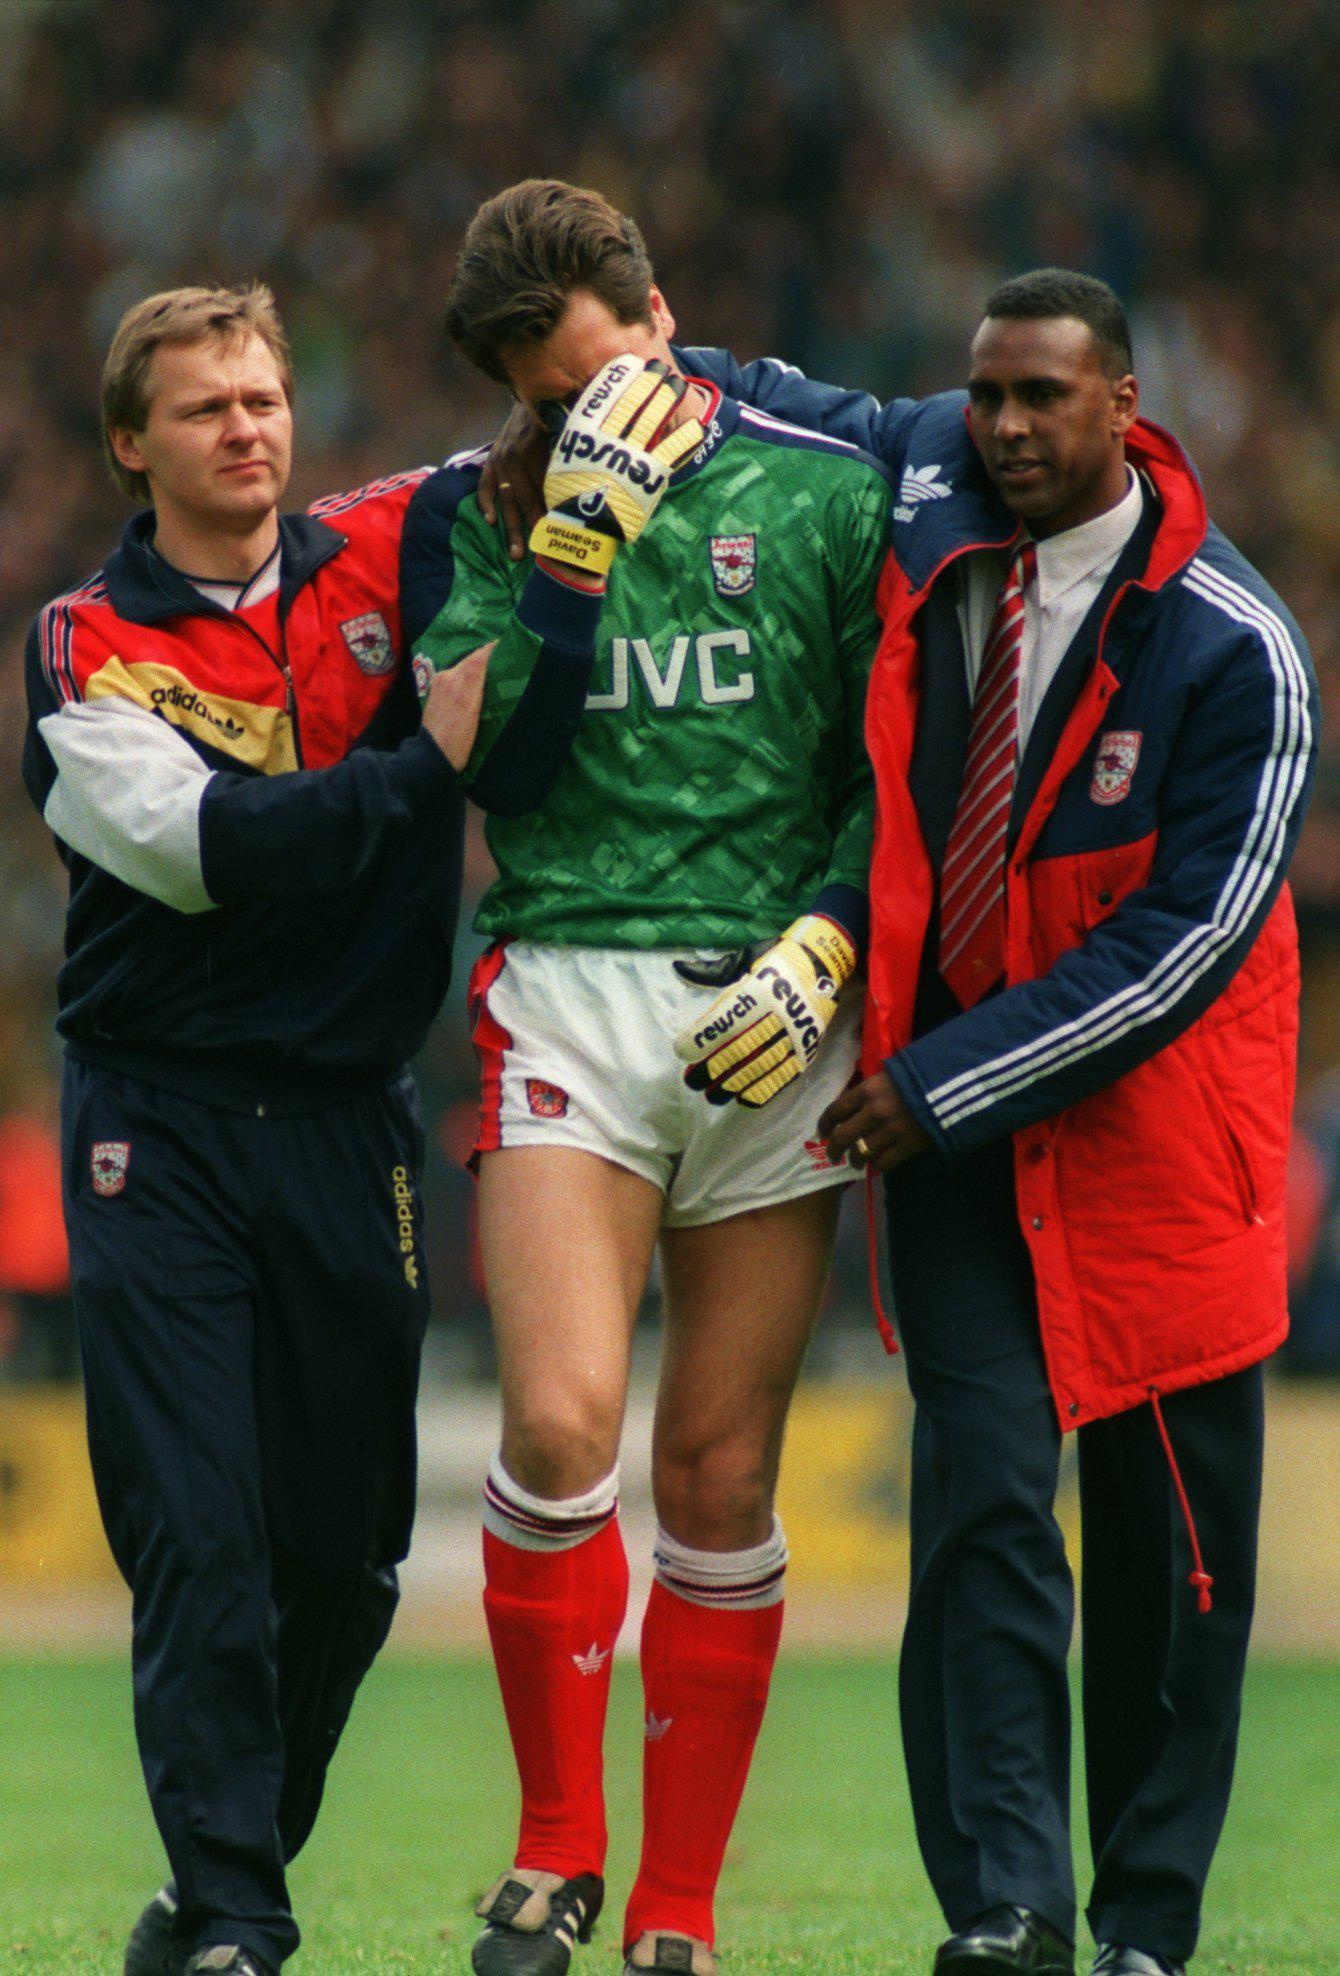 David Seaman couldnt keep it together as Arsenal lost to Tottenham in the 1991 FA Cup semi-final, losing 3-1 to Tottenham